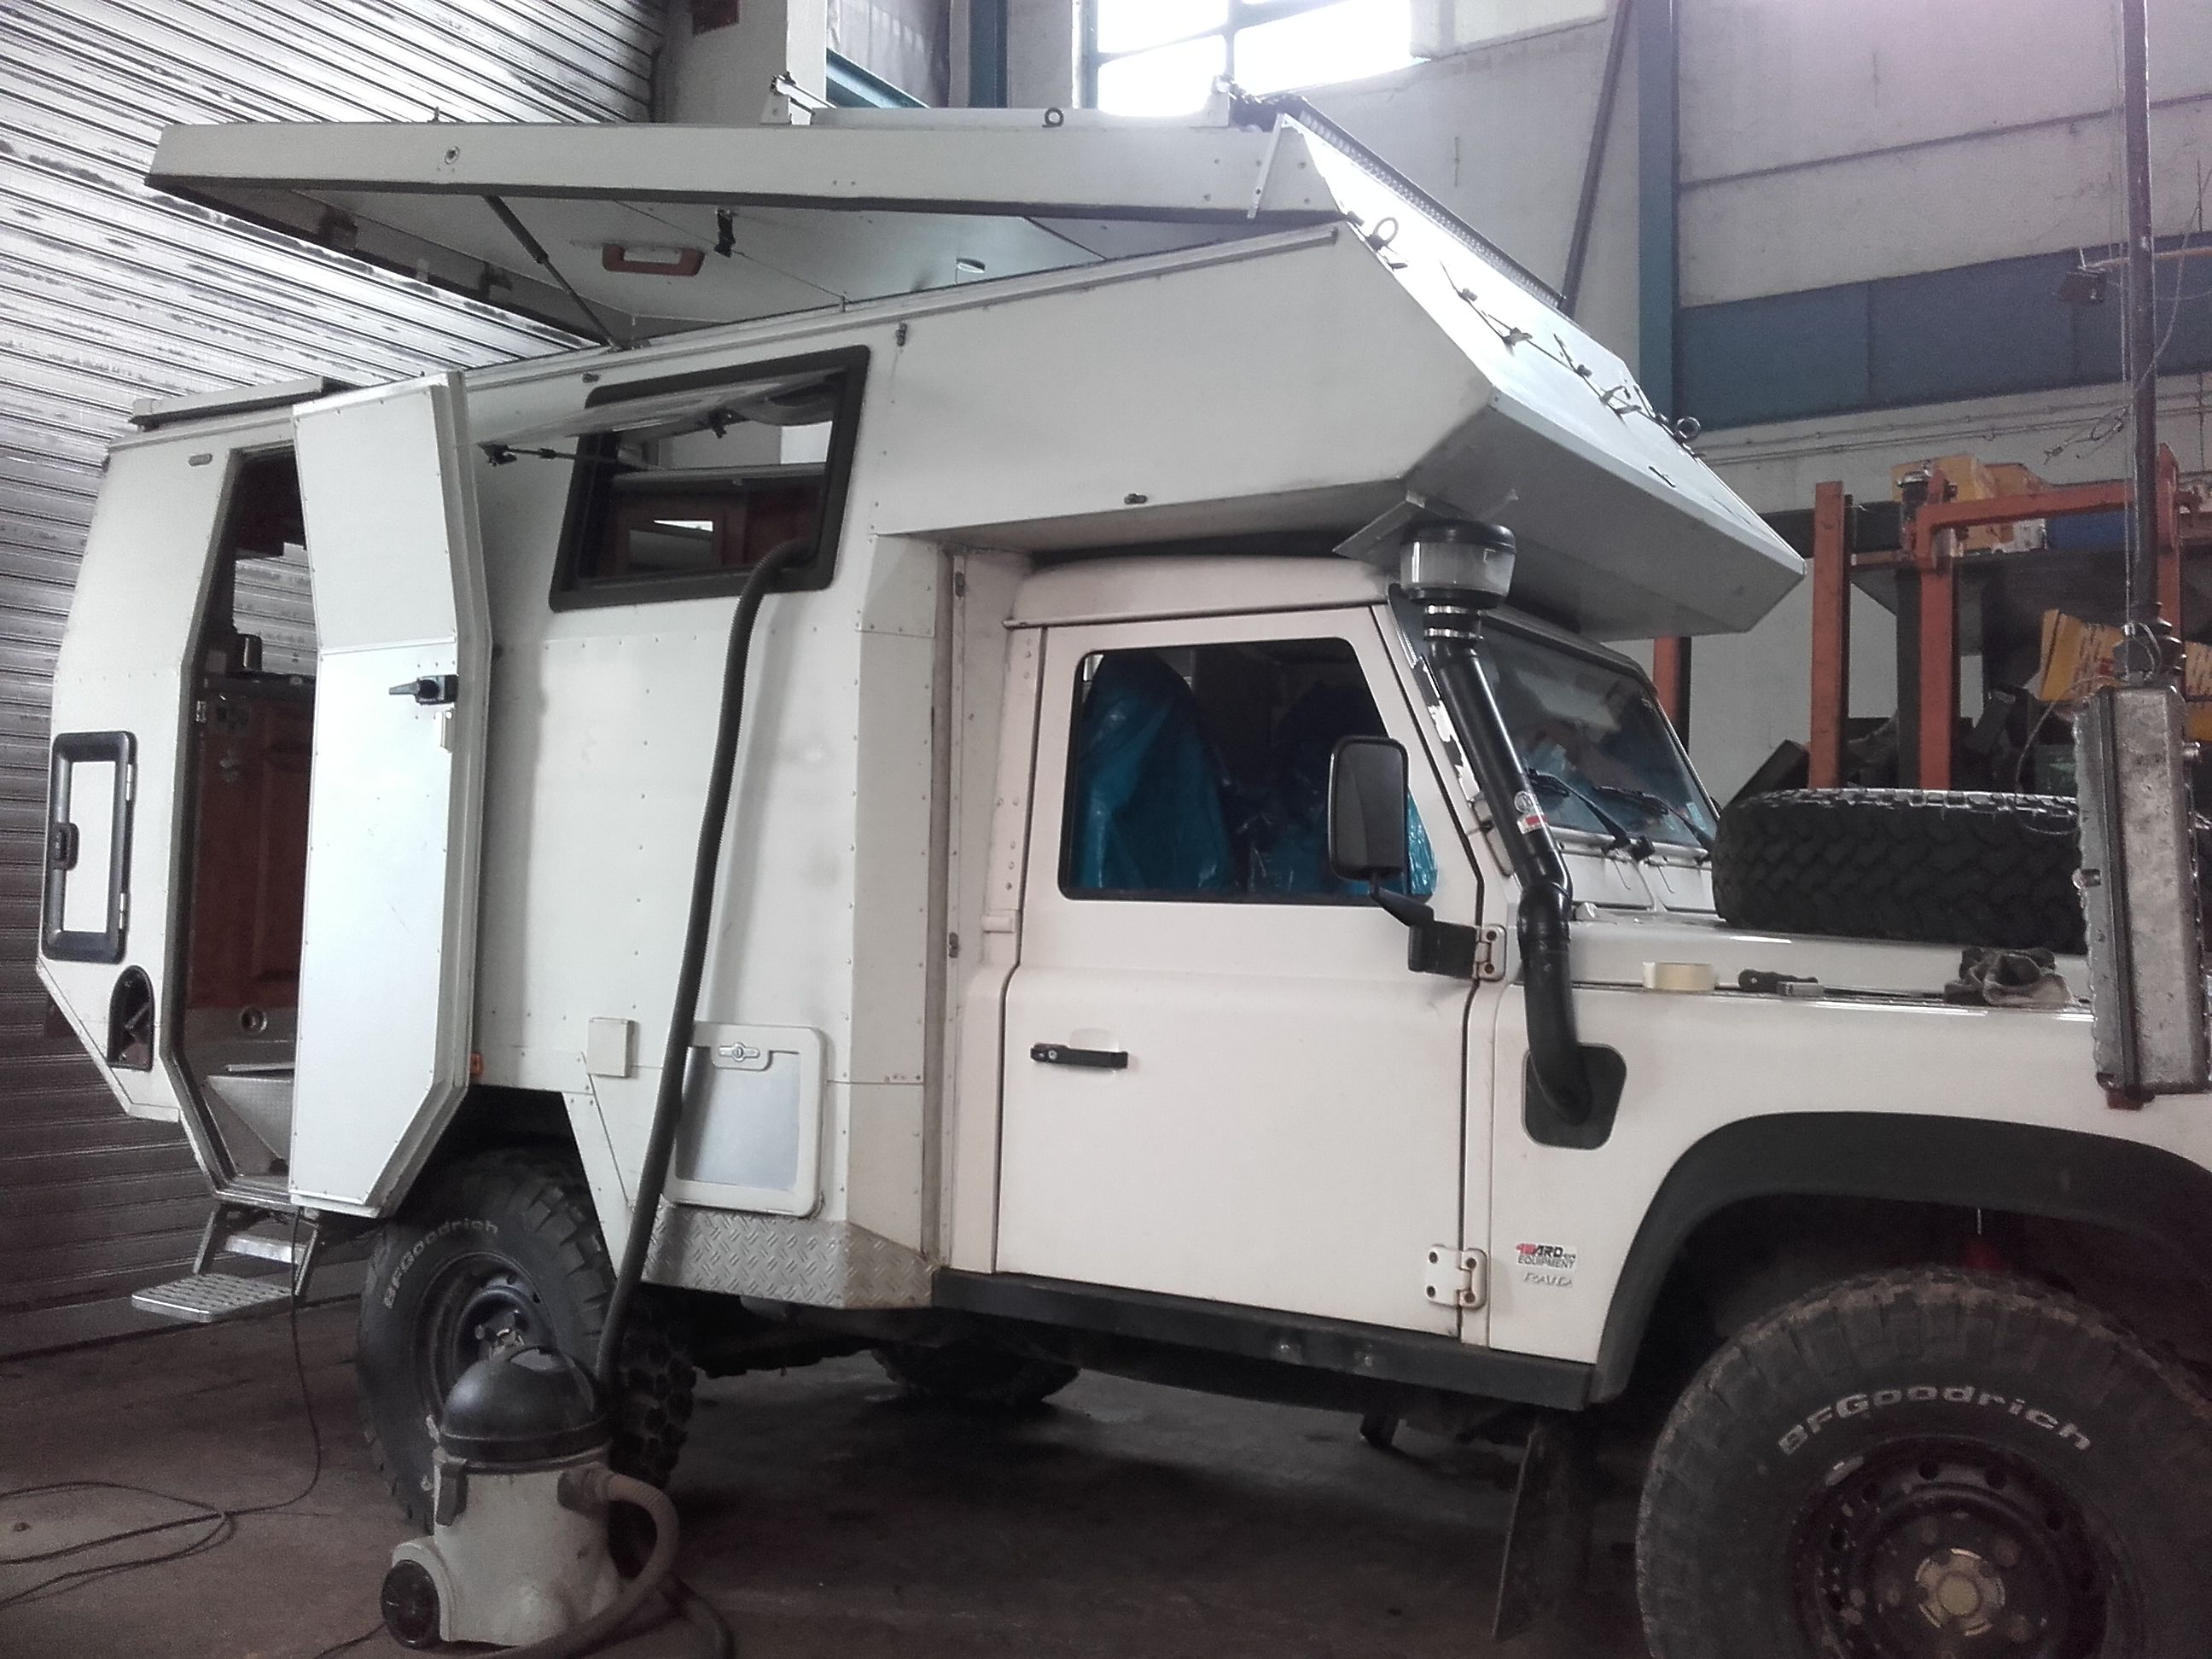 Landy Camper Basis Defender 110 Tdi Expedition And